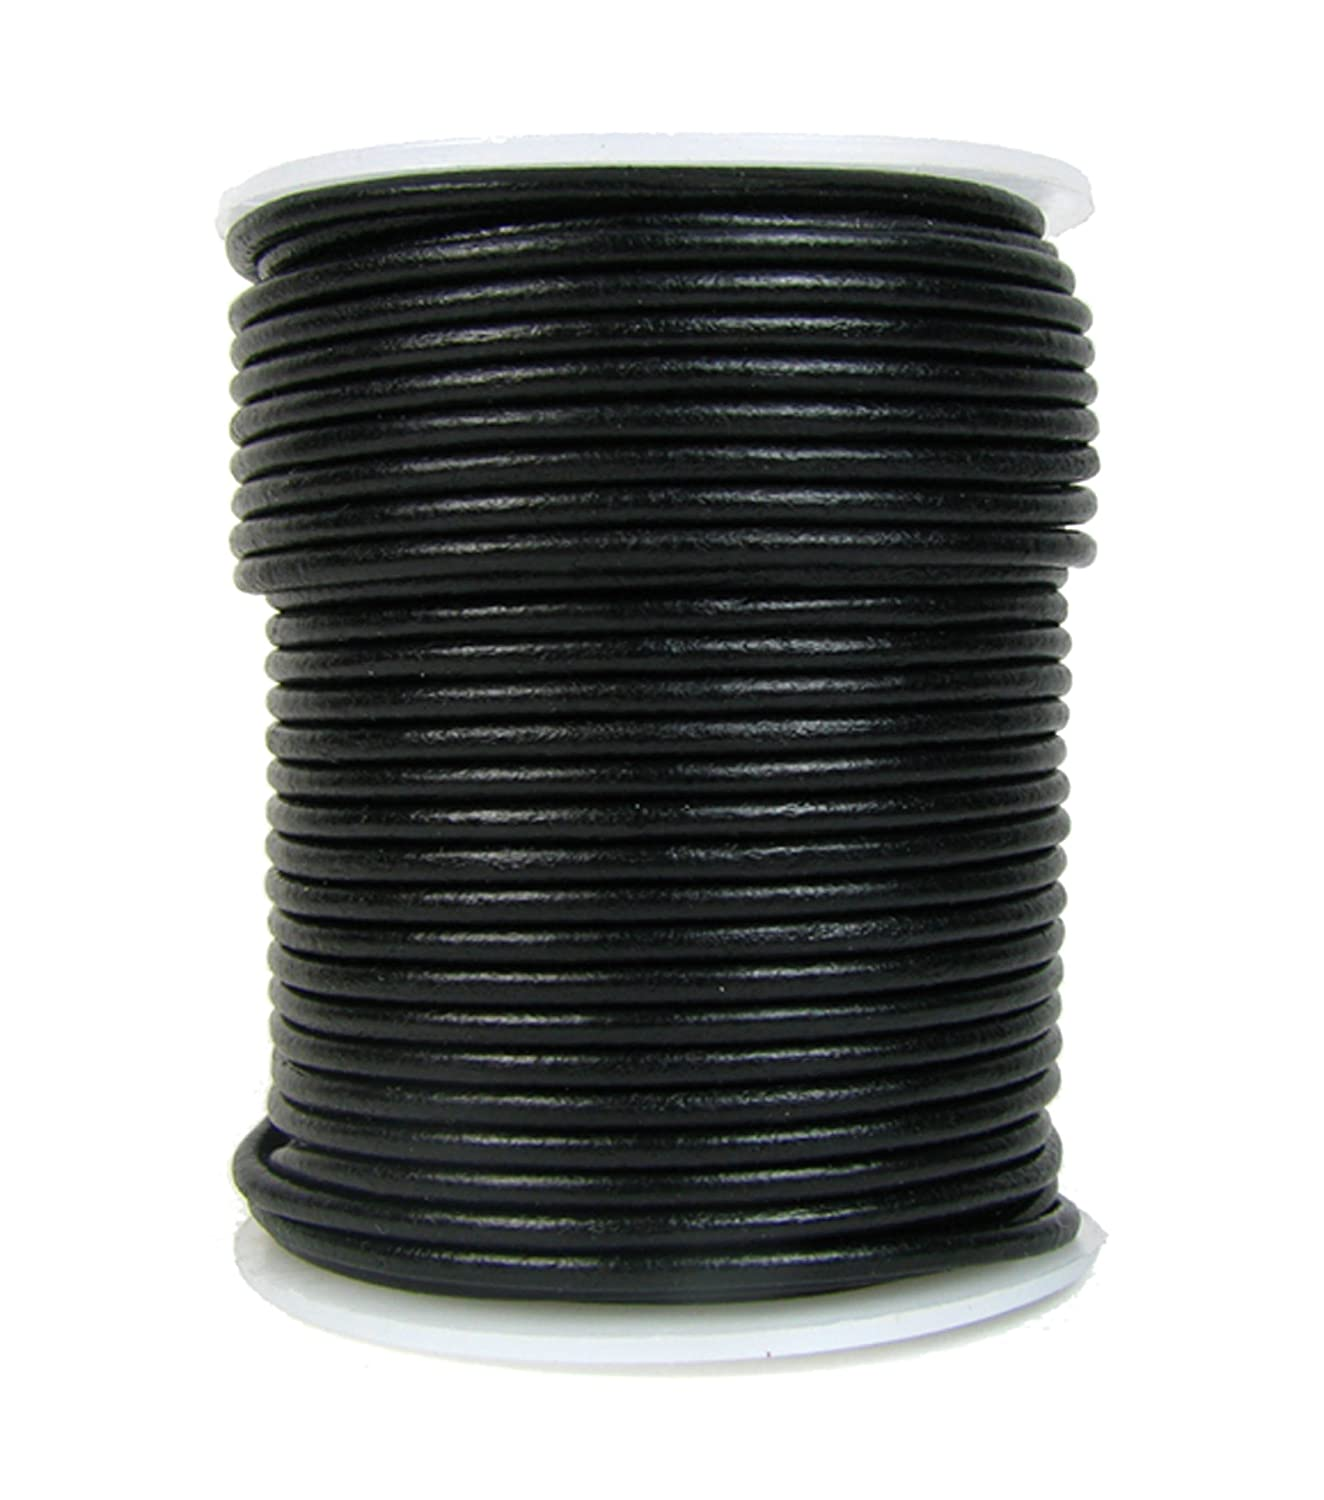 Round Leather Cord, 1mm Black, 25 Meter Spool (~28 Yards) for Beading, Jewelry, Crafts GenuineLeatherCord BCACS24399